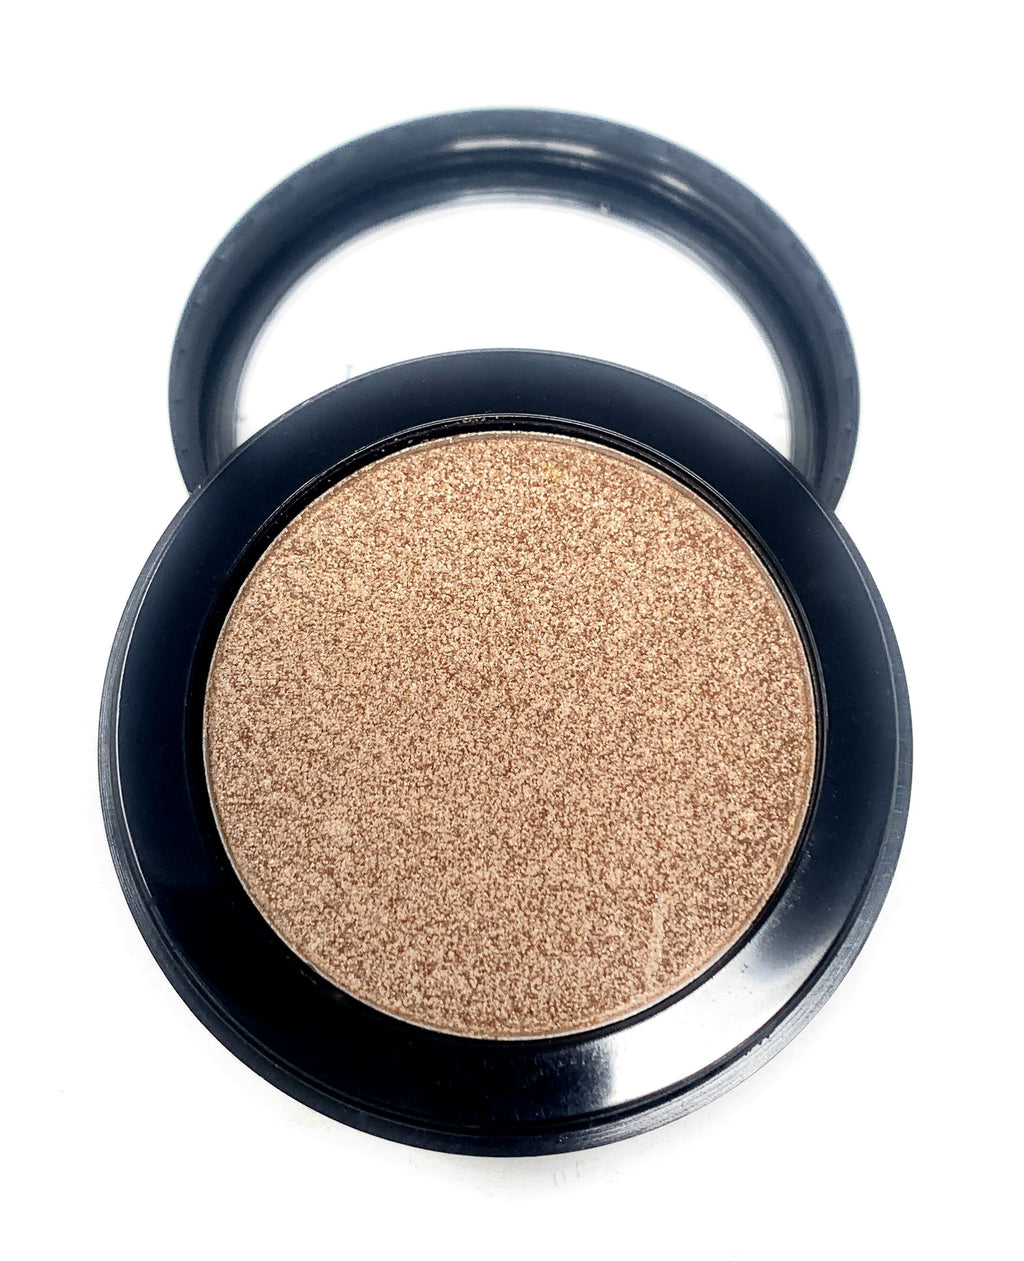 Single Pressed Eyeshadow In the Shade Delicate Compact Smooth Pigmented Eyeshadow Light Gold Foiled Colour